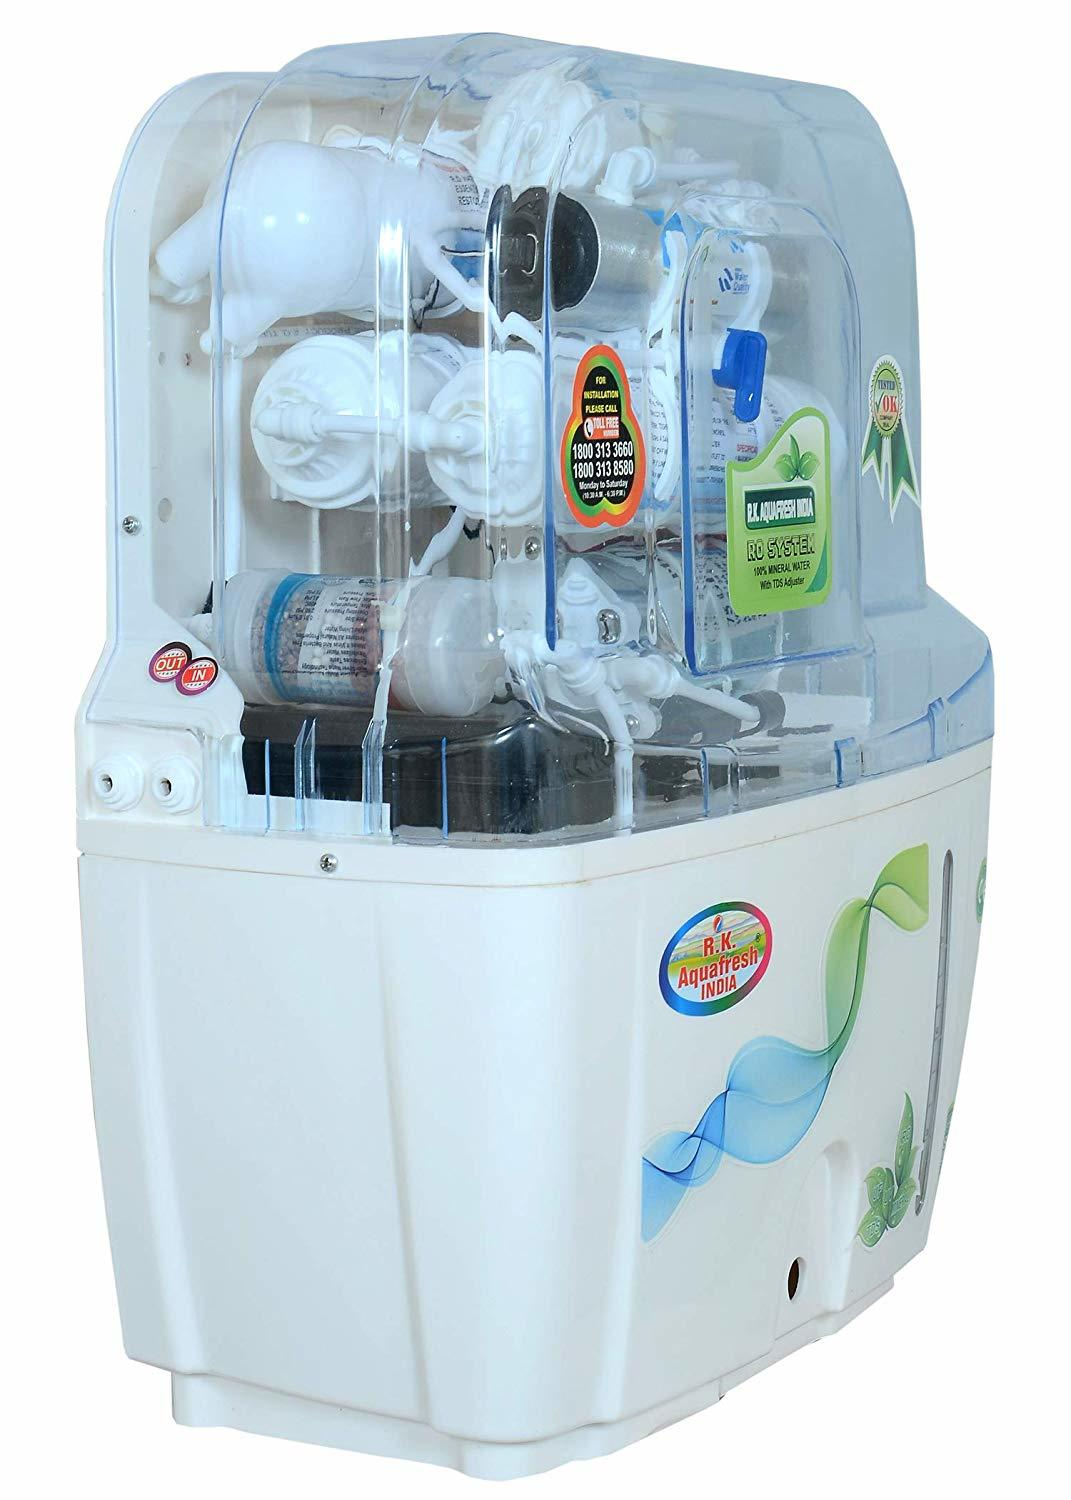 R.K. AQUA FRESH INDIA White Ultra Advanced 12 Ltrs 14 Stage RO Water Purifier